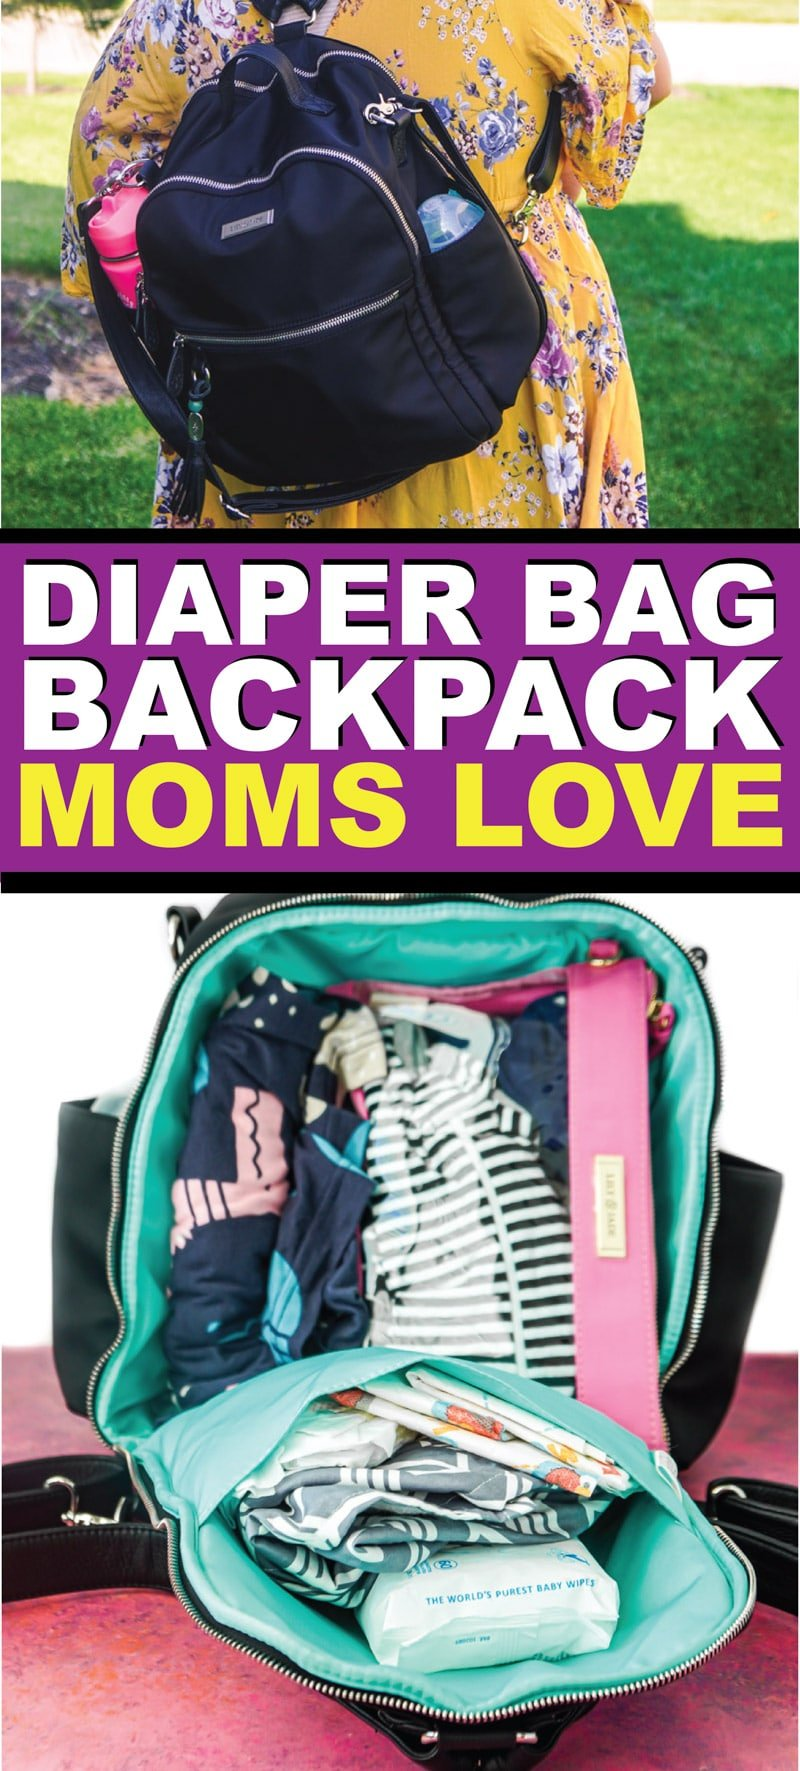 Two of the best diaper bag backpack options including a full review of Lily Jade diaper bags.